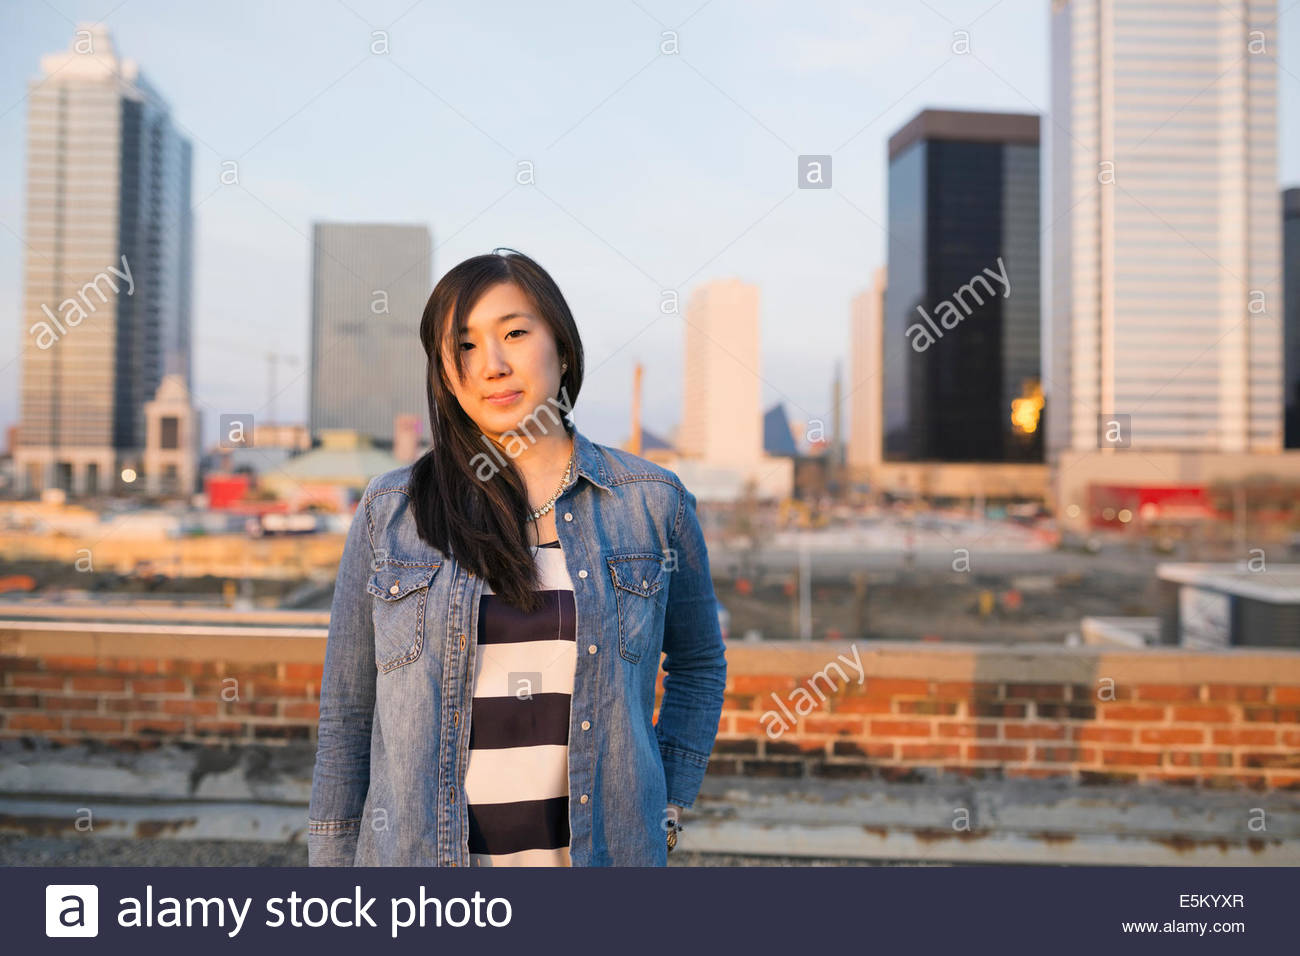 Portrait of woman on urban rooftop - Stock Image